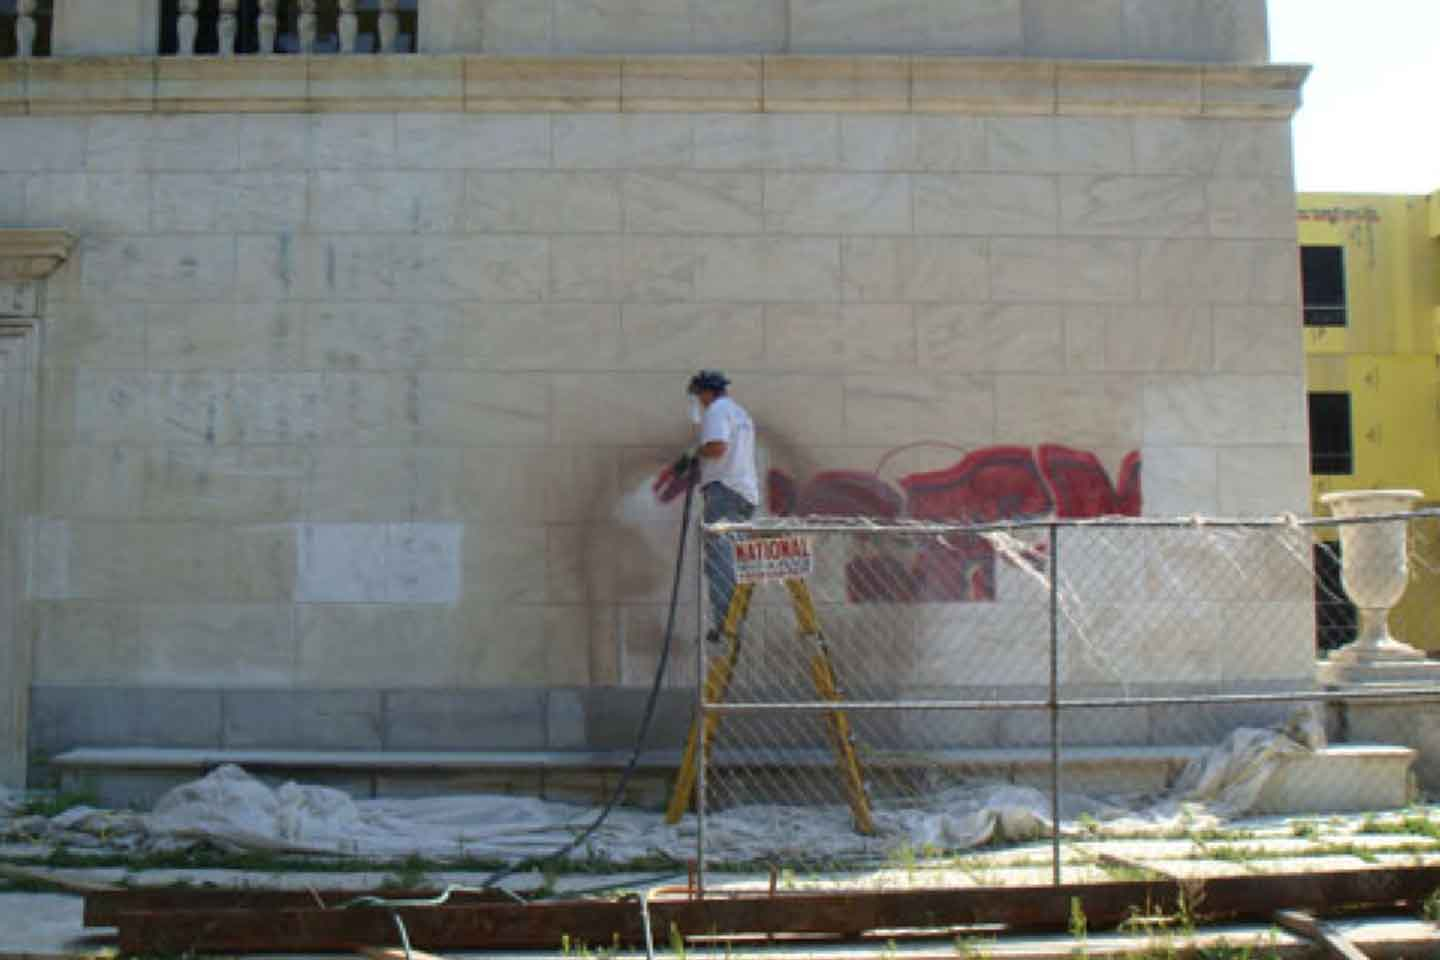 Vail Mansion Historical Building - Cleaning/Graffiti Removal Using Farrow System